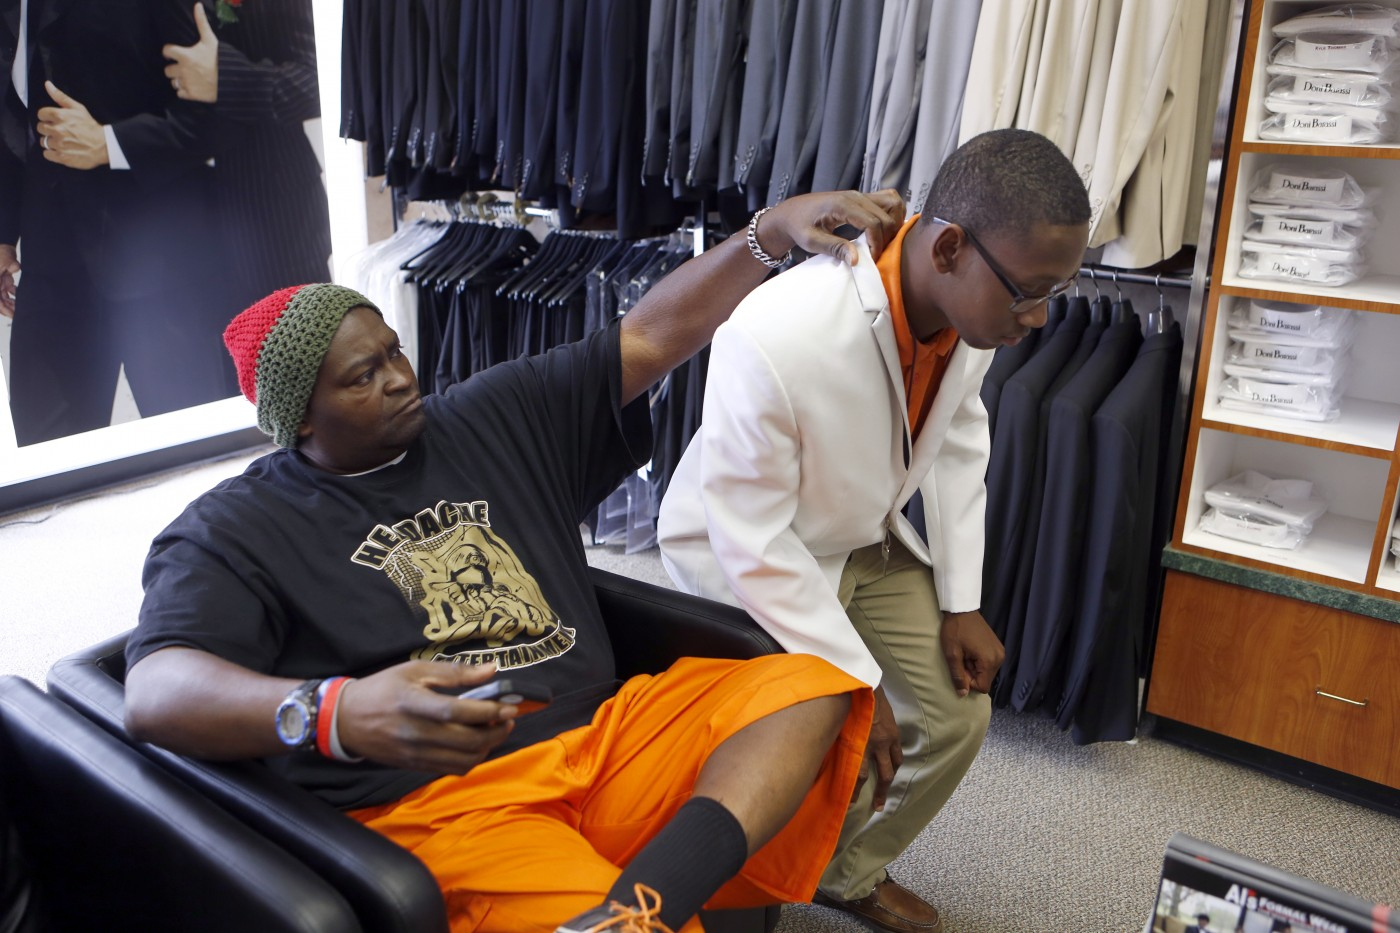 Charles 'CJ' Johnson, left, helps Desmond Davis with his buttons while trying on a tux for his prom at Al's Formal Wear in Dallas. Photo/Lara Solt